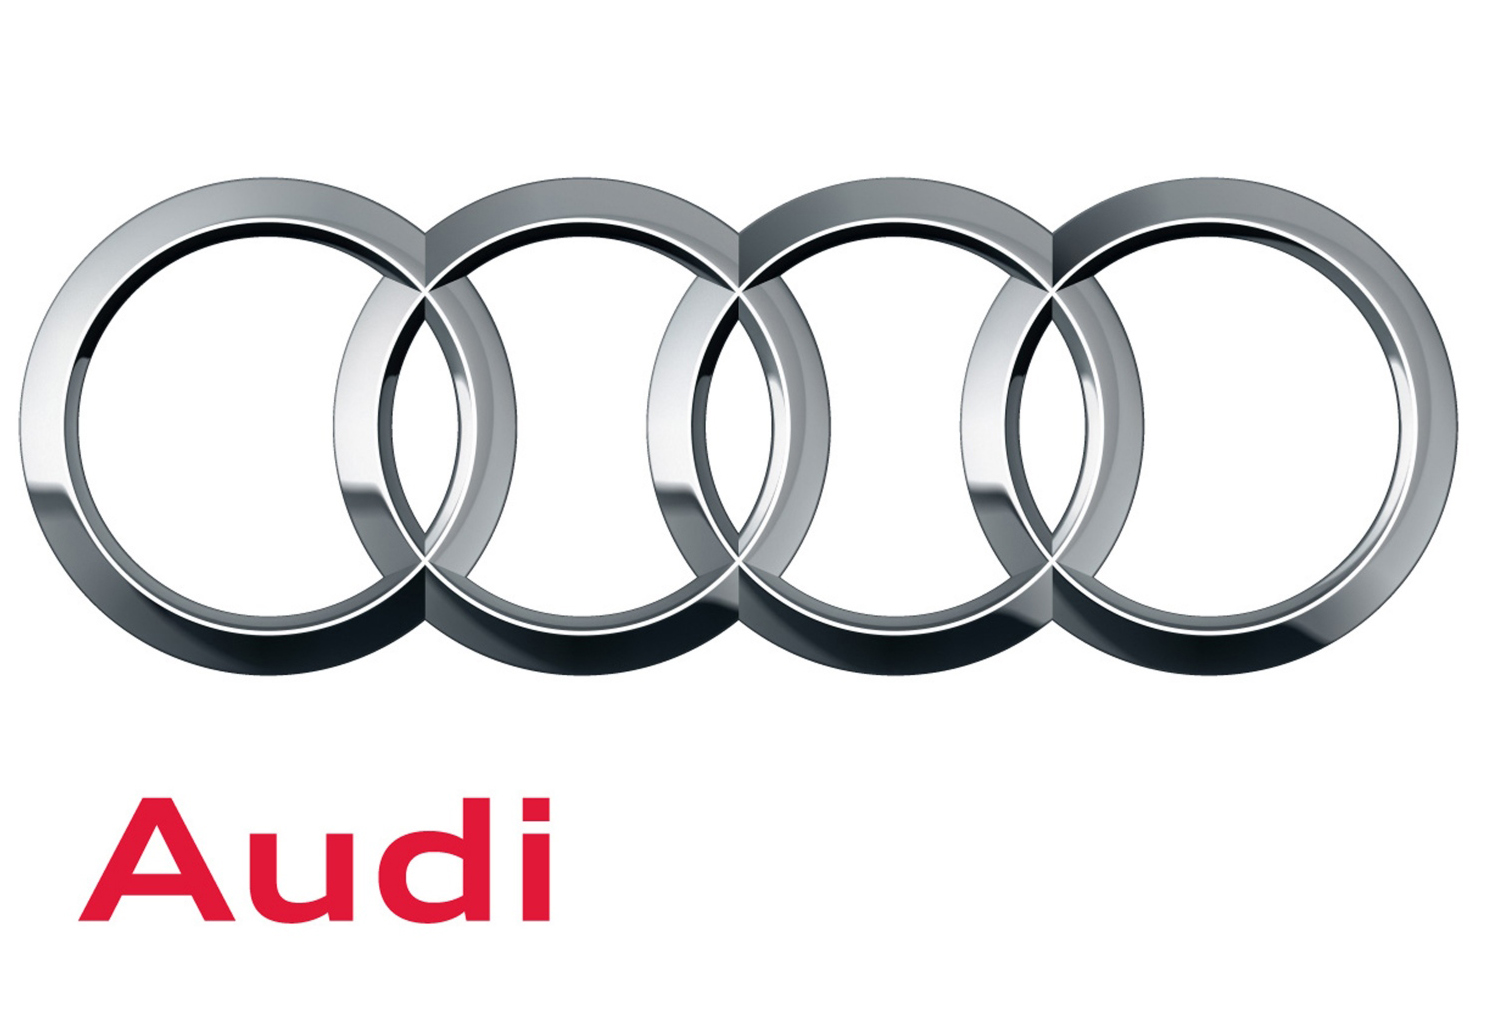 photo logo audi gratuit